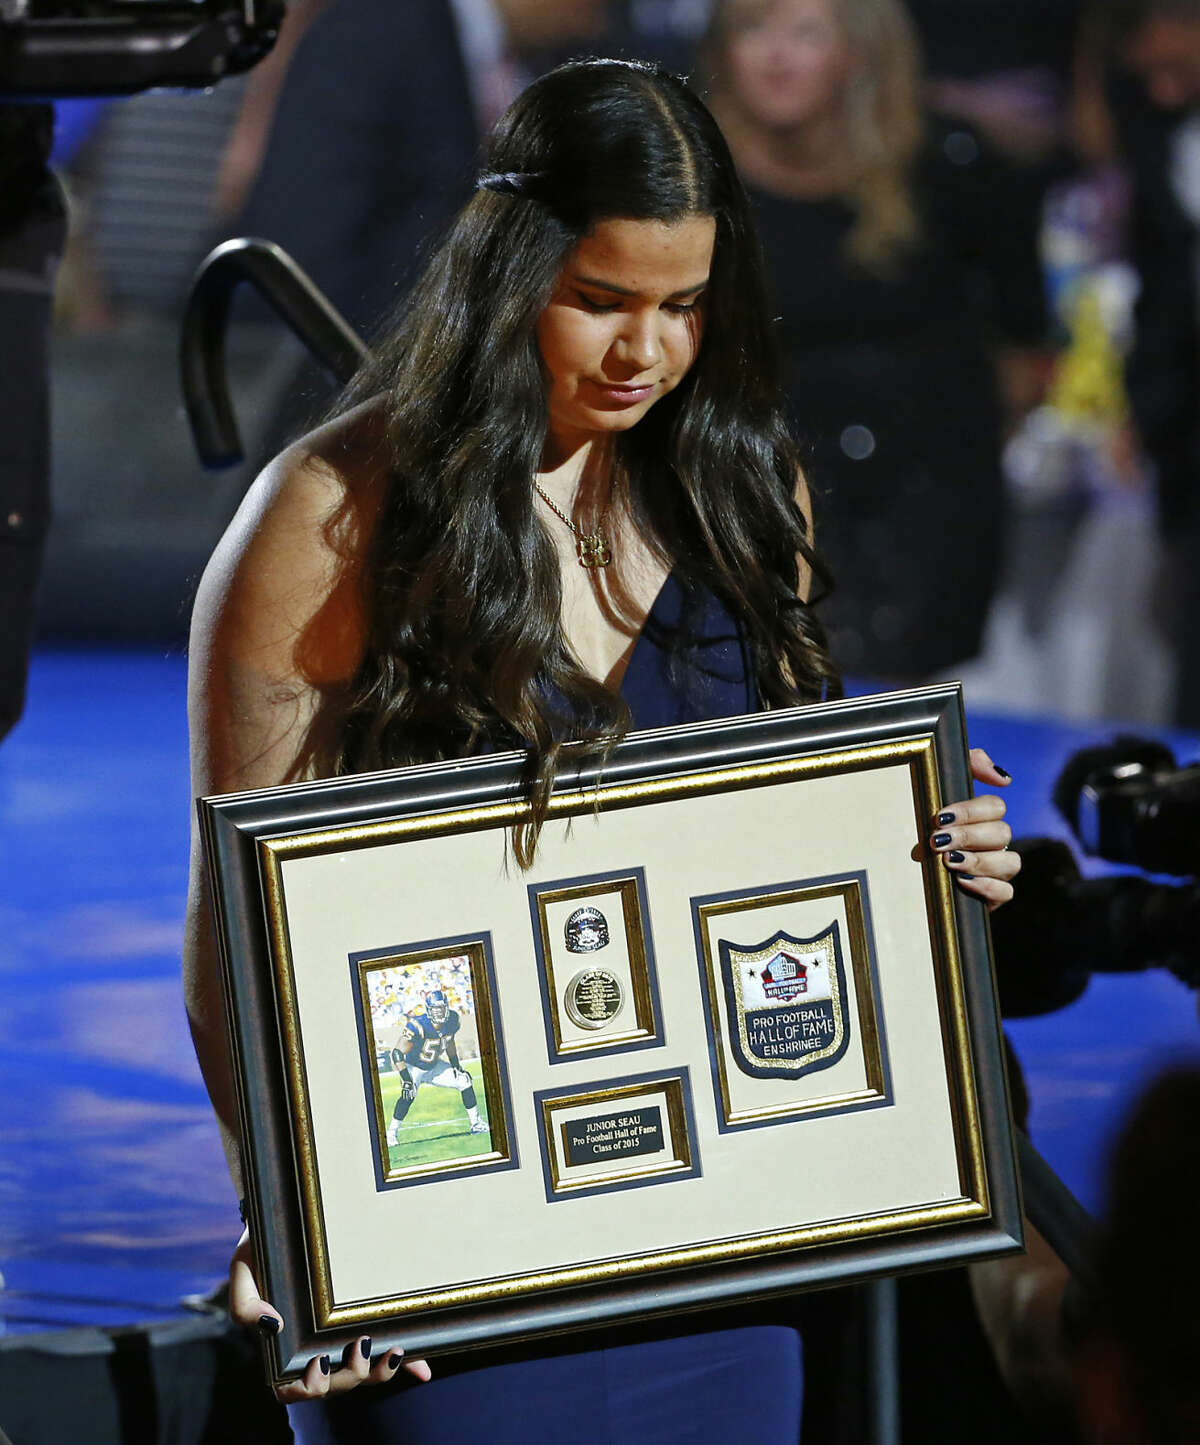 Daughter of Pro Football Hall of Fame inductee Junior Seau, Sydney Seau, accepts a framed remembrance in place of her father's gold jacket during the Gold Jacket Ceremony in Canton, Ohio, Thursday, Aug. 6, 2015. (AP Photo/Gene J. Puskar)